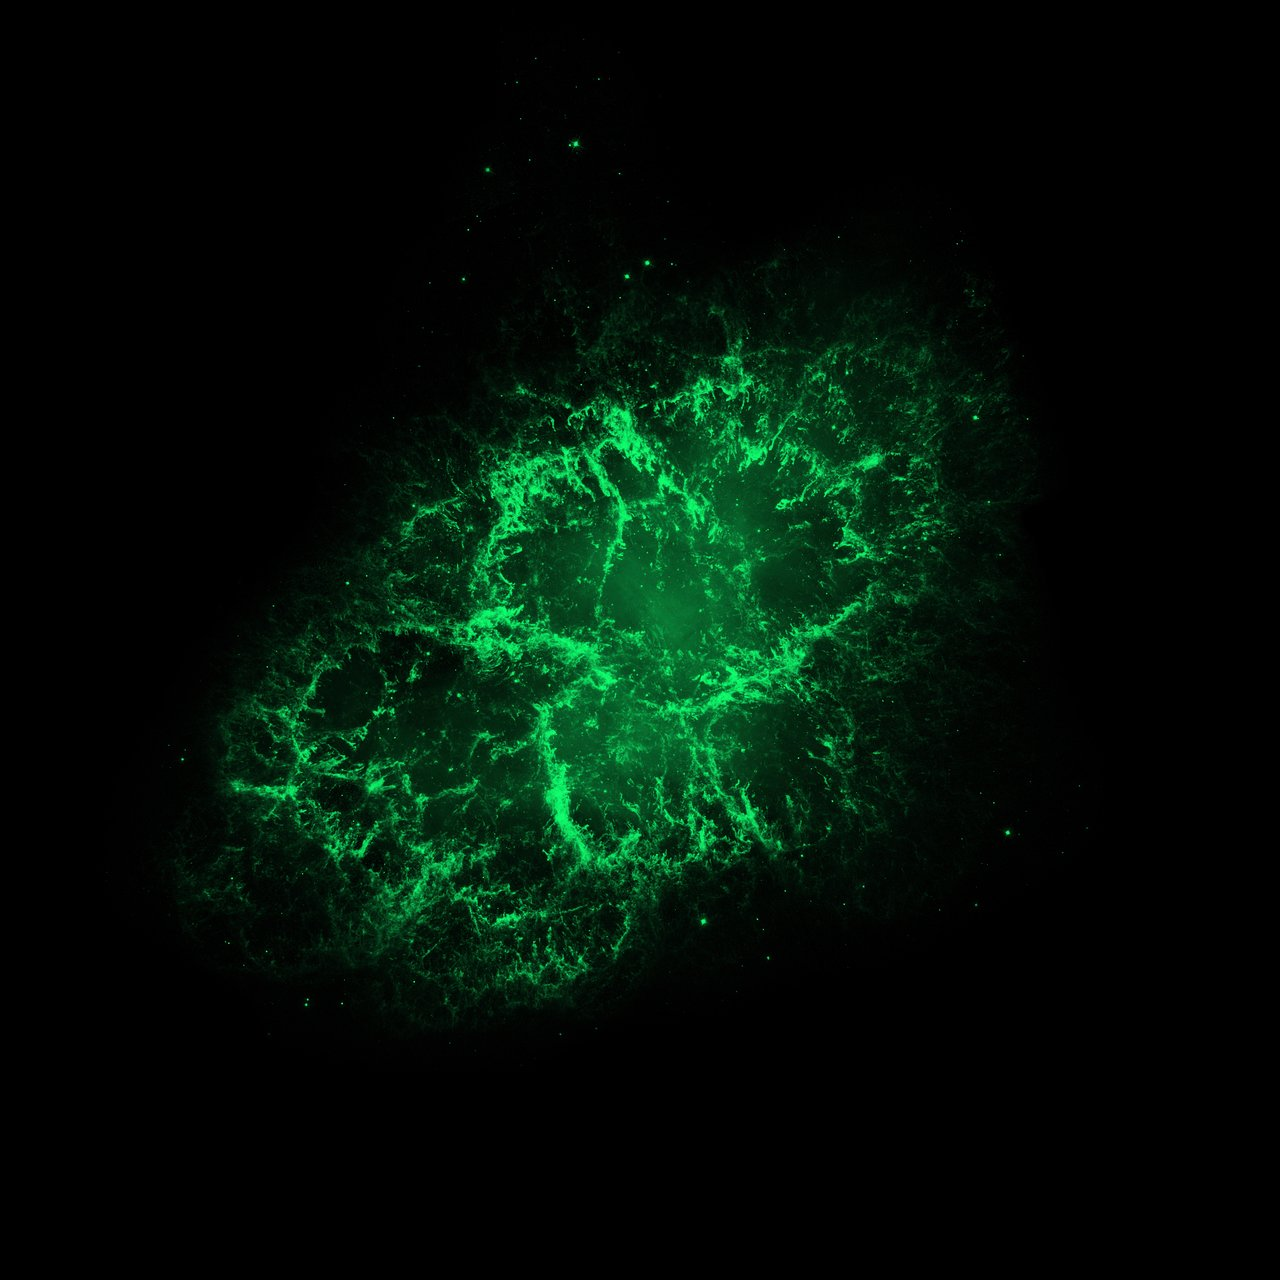 Hubble Space Telescope (visible) Image of the Crab Nebula